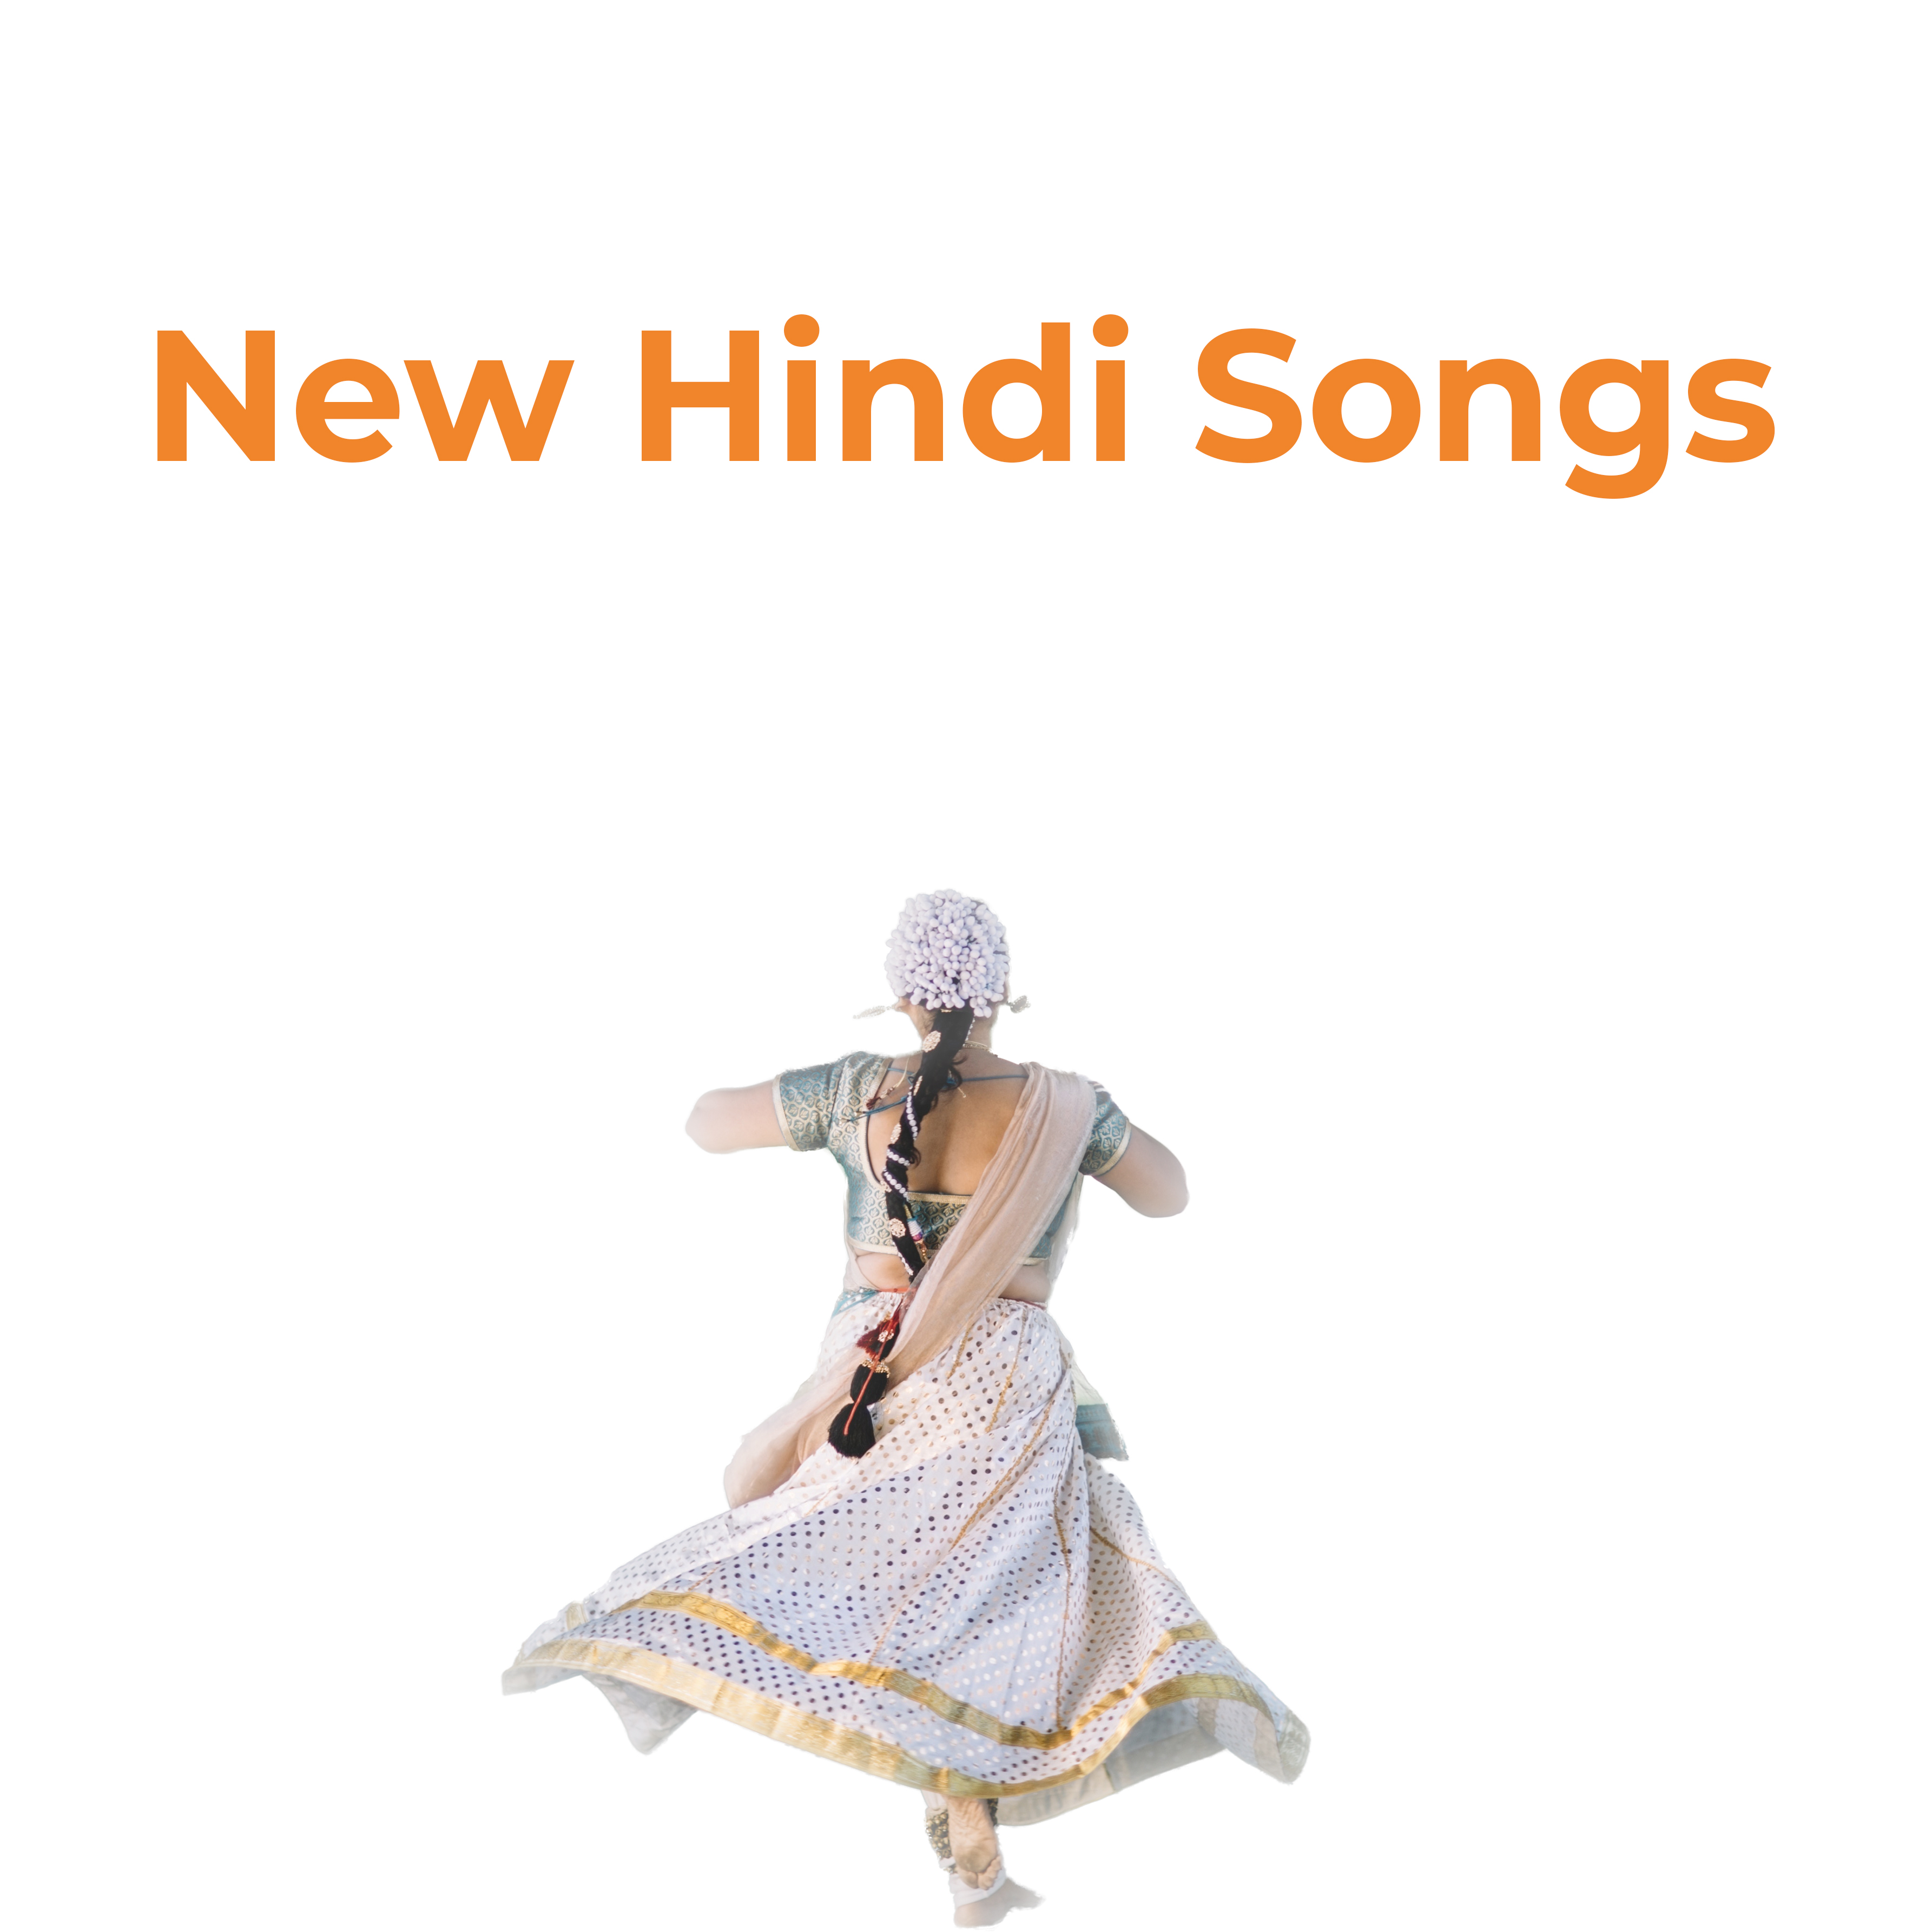 New Hindi Songs 2018 New Bollywood Songs 2018 Playlist Kolibri Music Listen to latest hindi songs 2020 | soundcloud is an audio platform that lets you listen to what you love stream tracks and playlists from latest hindi songs 2020 on your desktop or mobile device. new hindi songs 2018 new bollywood